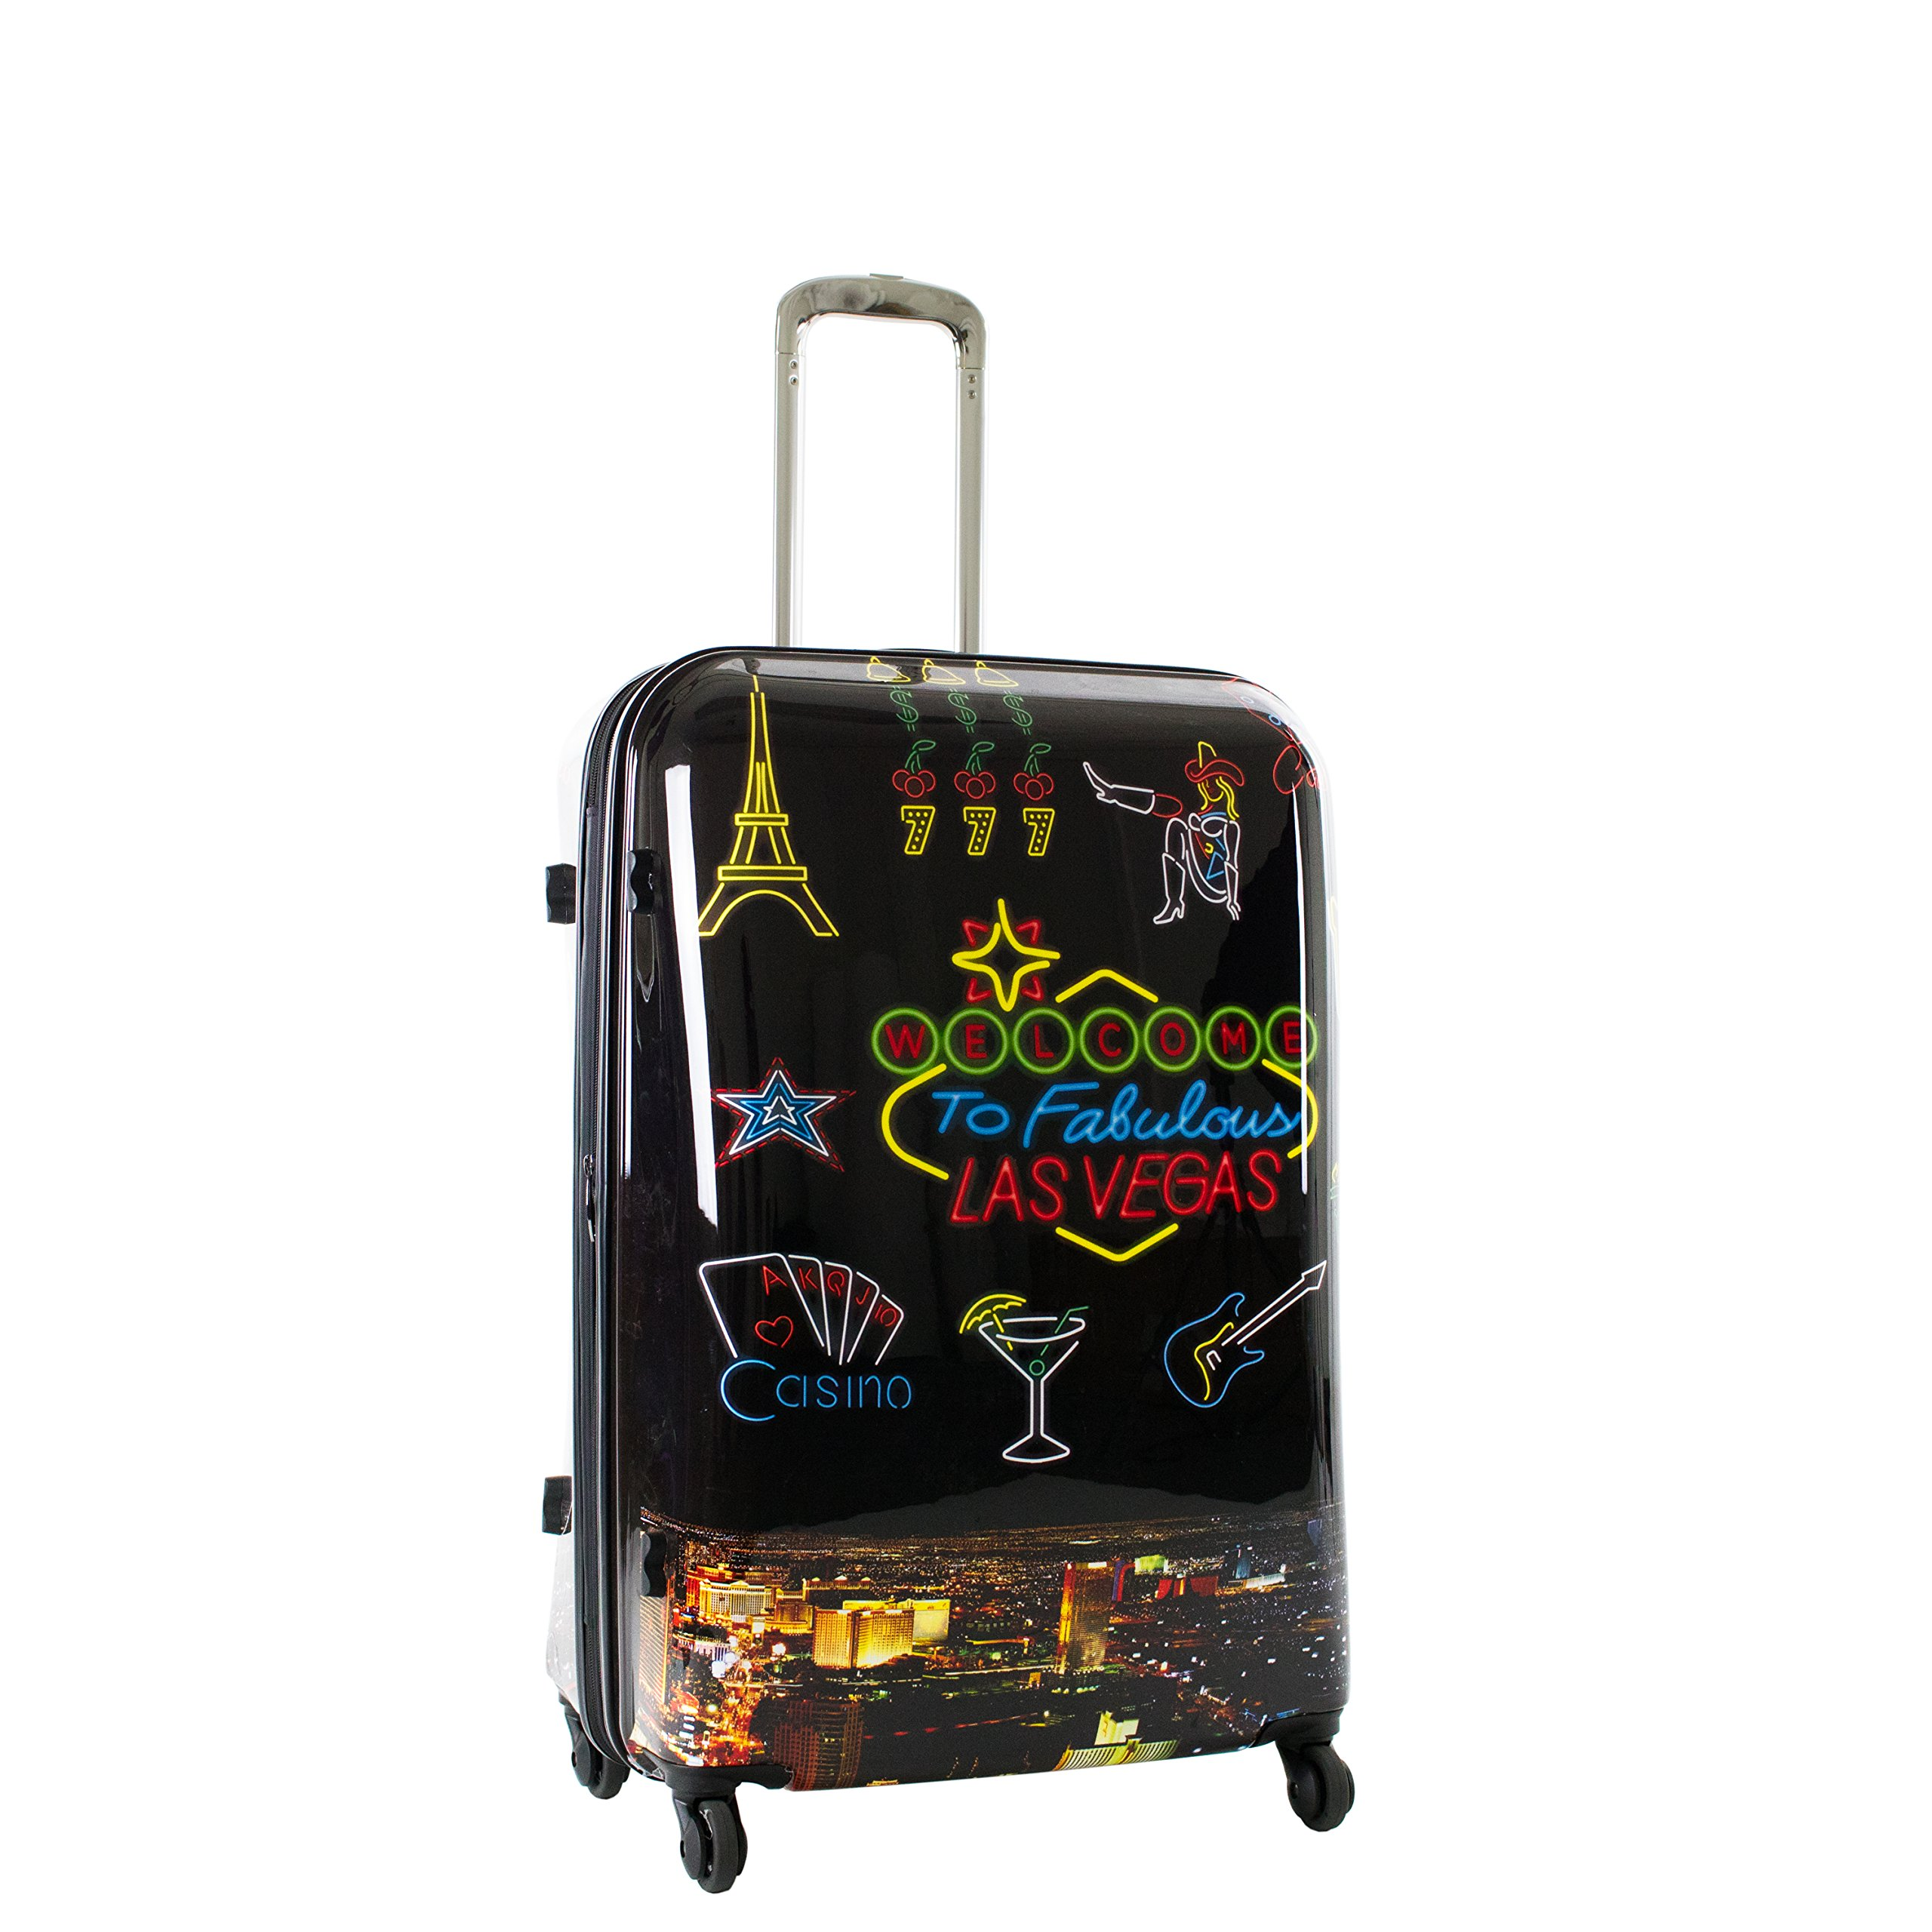 American Green Travel Las Vegas 28 inch Luggage